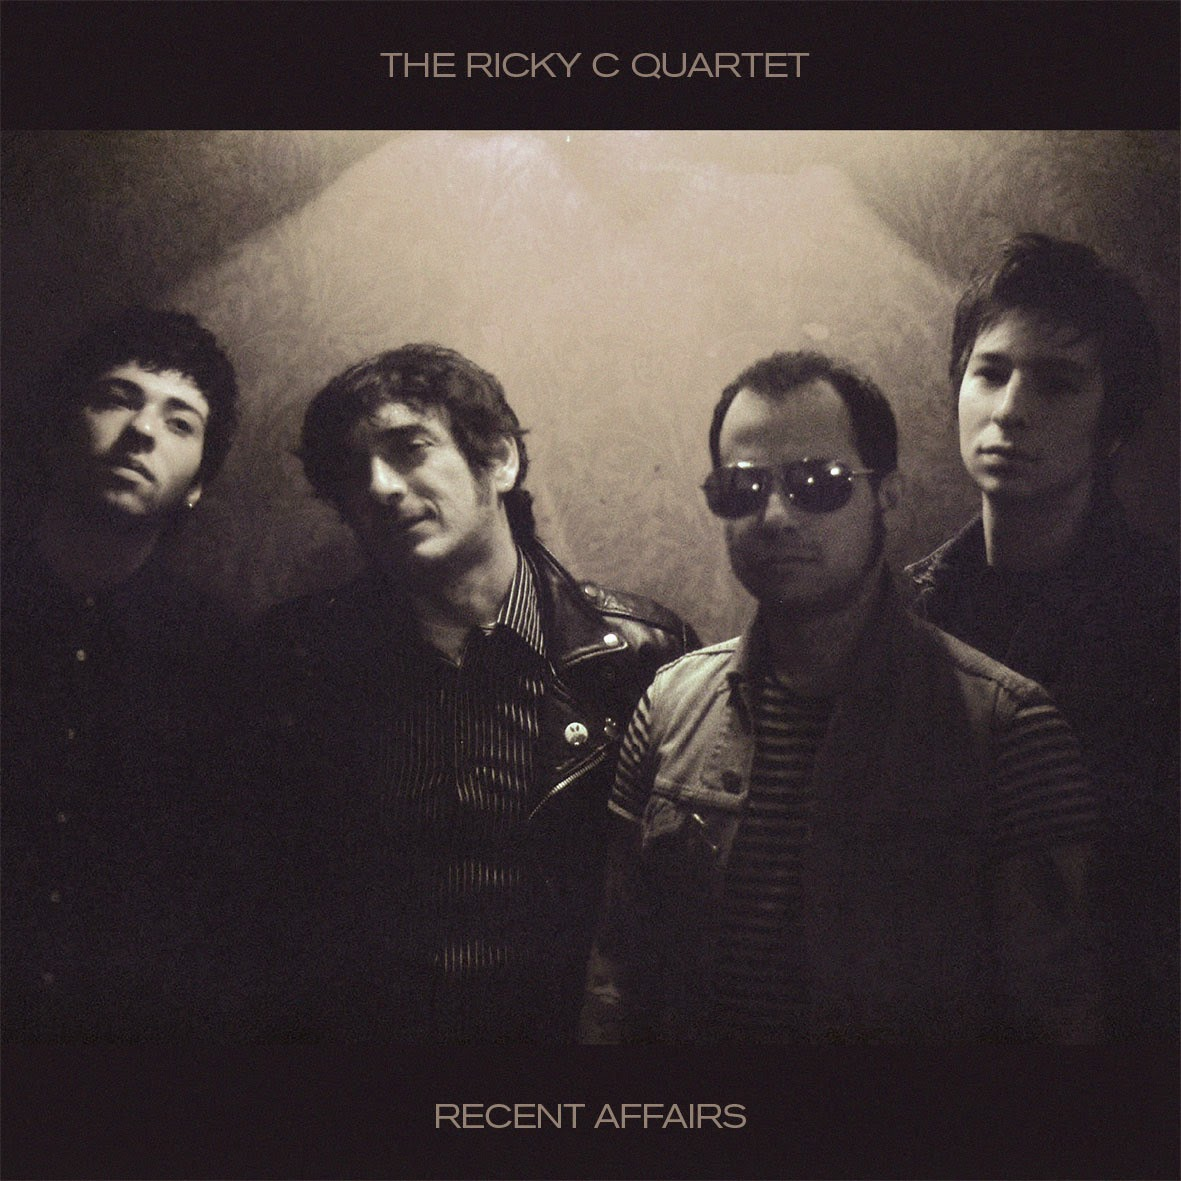 THE RICKY C QUARTET - Recent Affairs